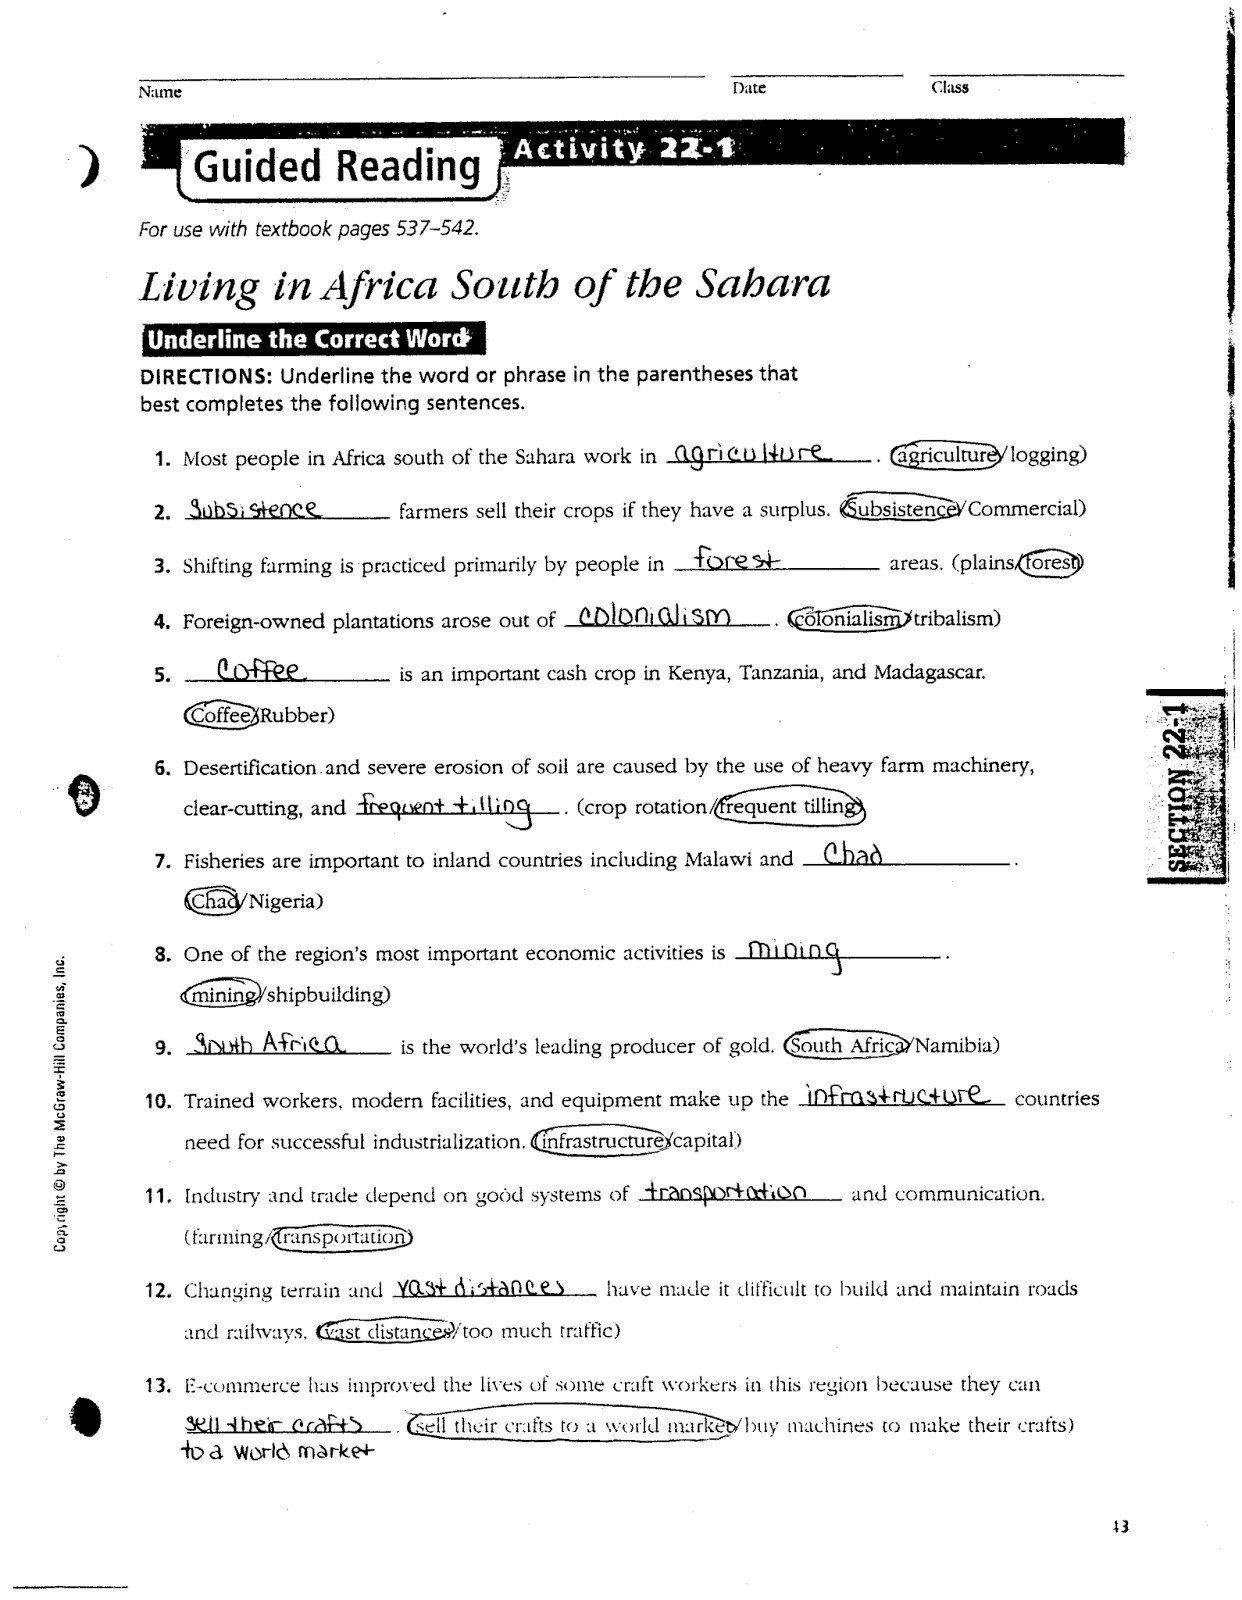 3rd Grade Economics Worksheets social Stu S China Worksheets